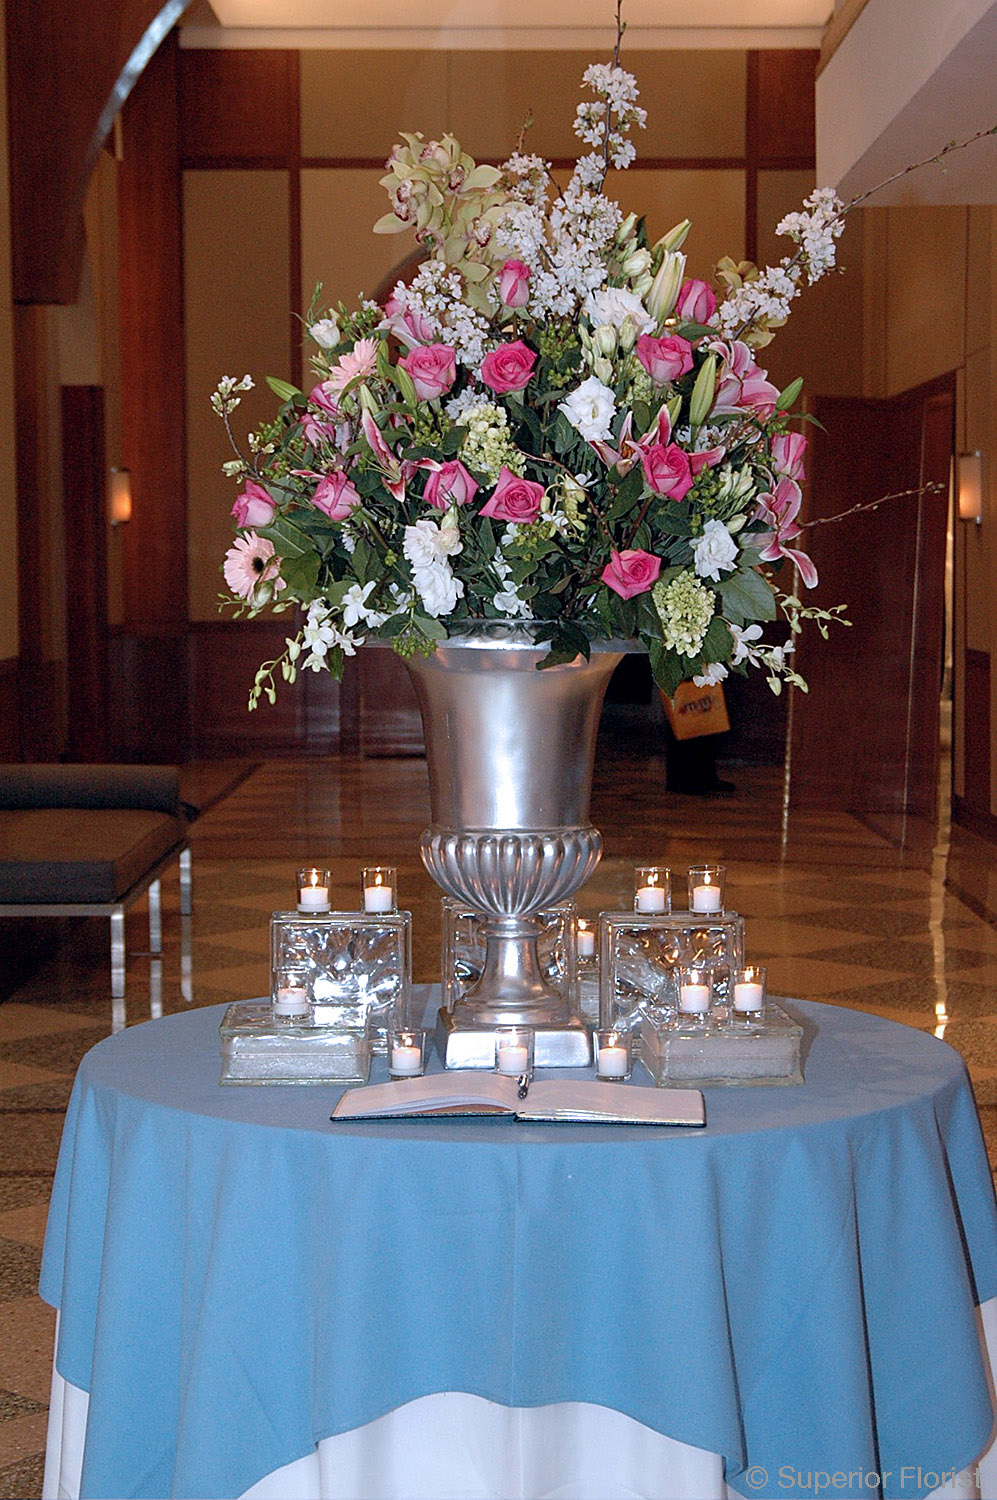 Superior Florist – Weddings – Escort Tables: Beautiful floral arrangement of whites, pinks and greens in a silver urn. Pier 60 at Chelsea Piers, NYC.